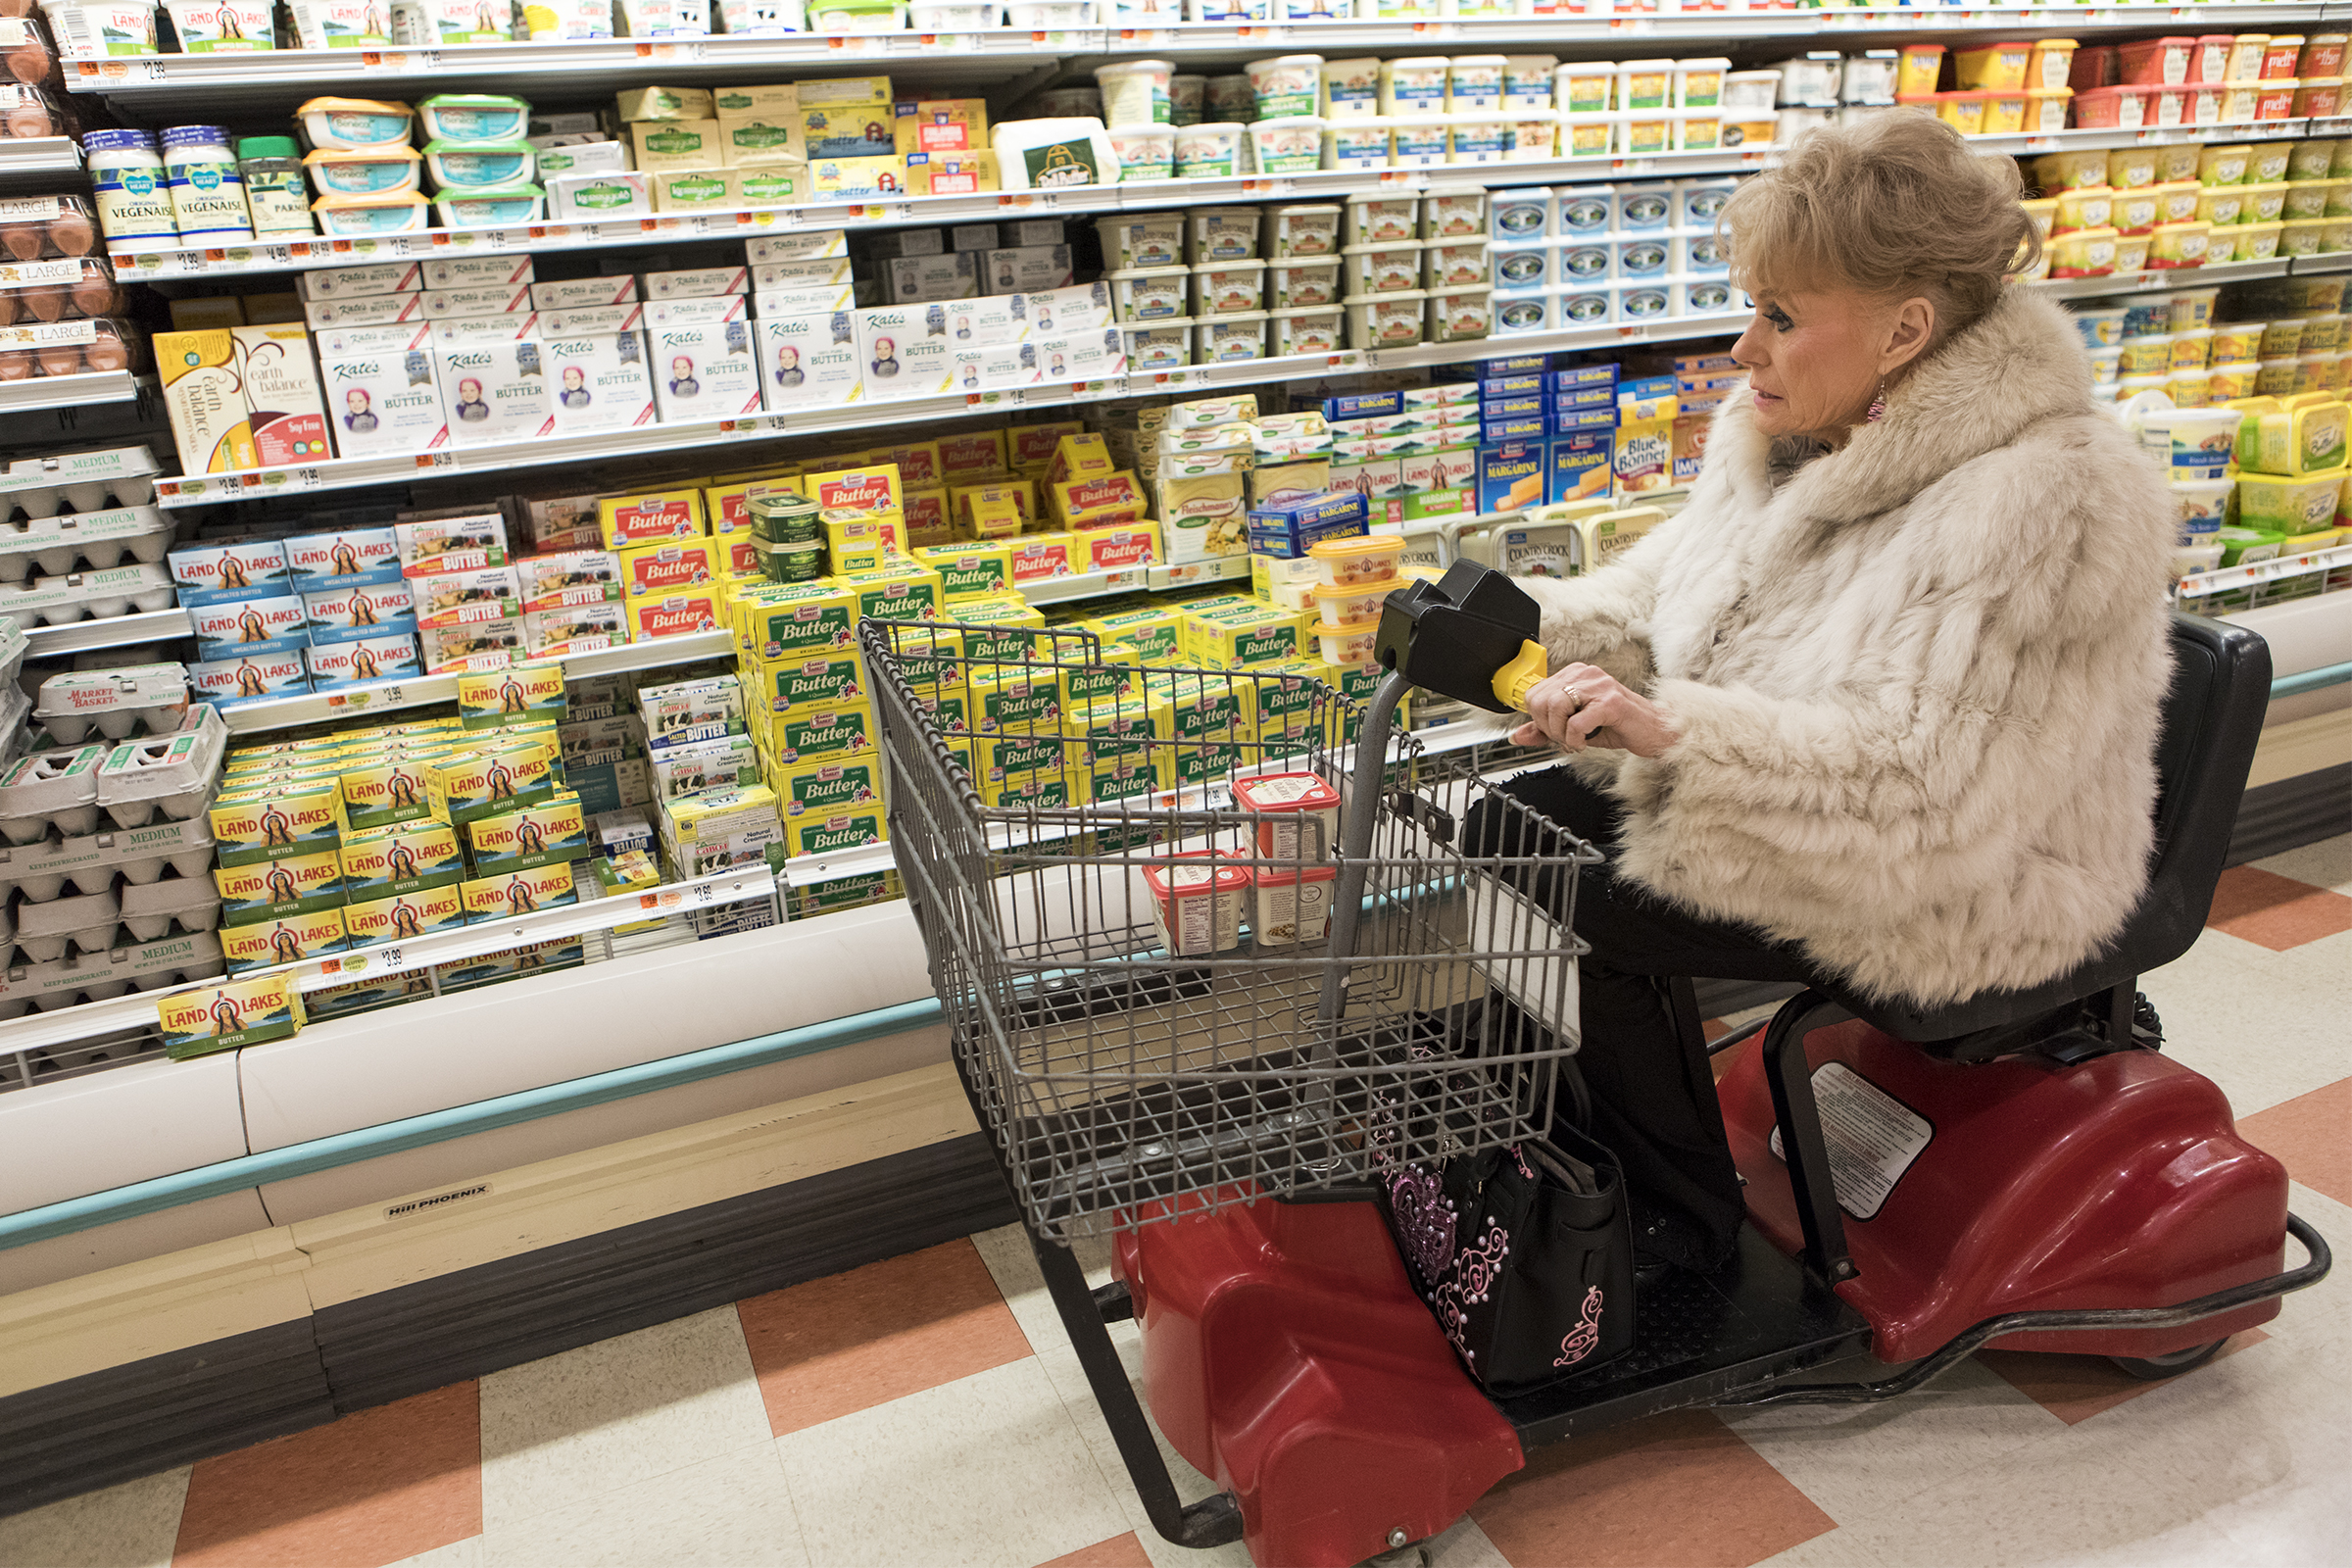 Fran Owens drives her shopping cart at Market Basket in Stoneham on January 14, 2019.